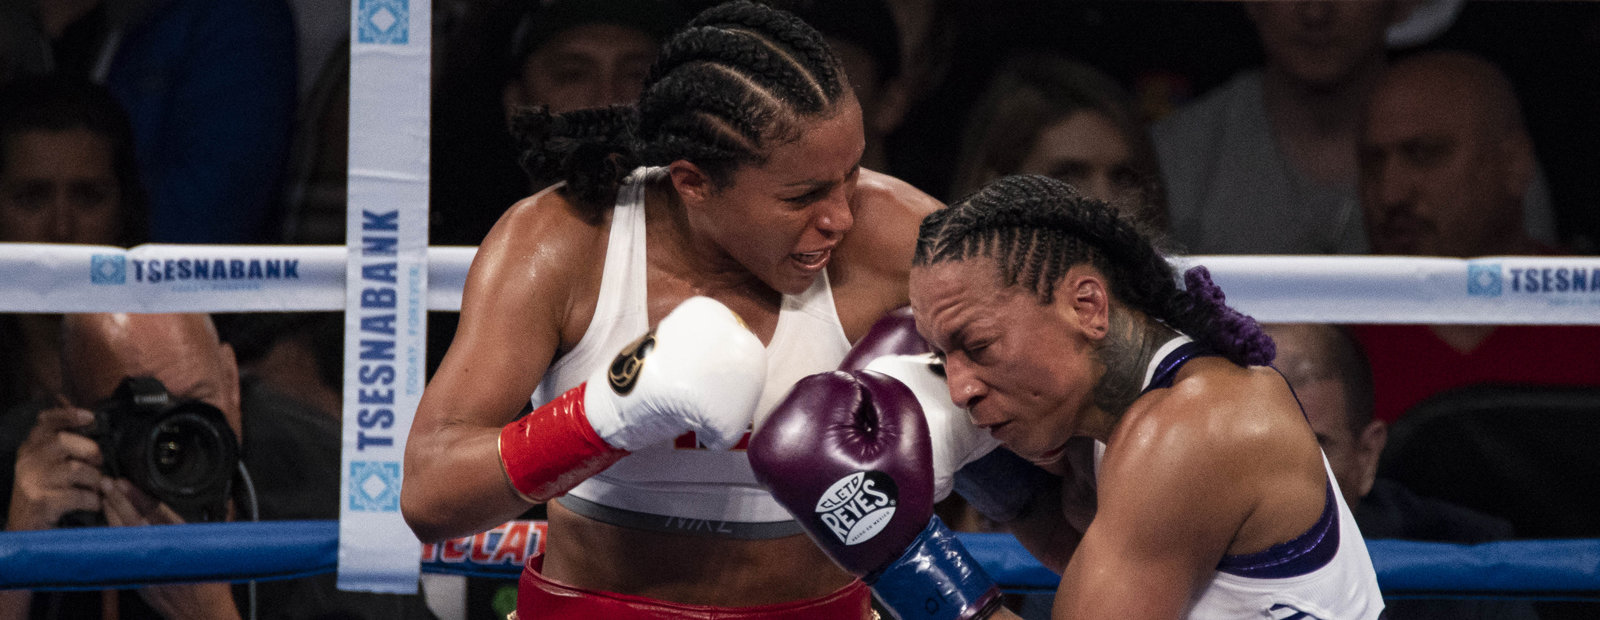 Two women boxing.